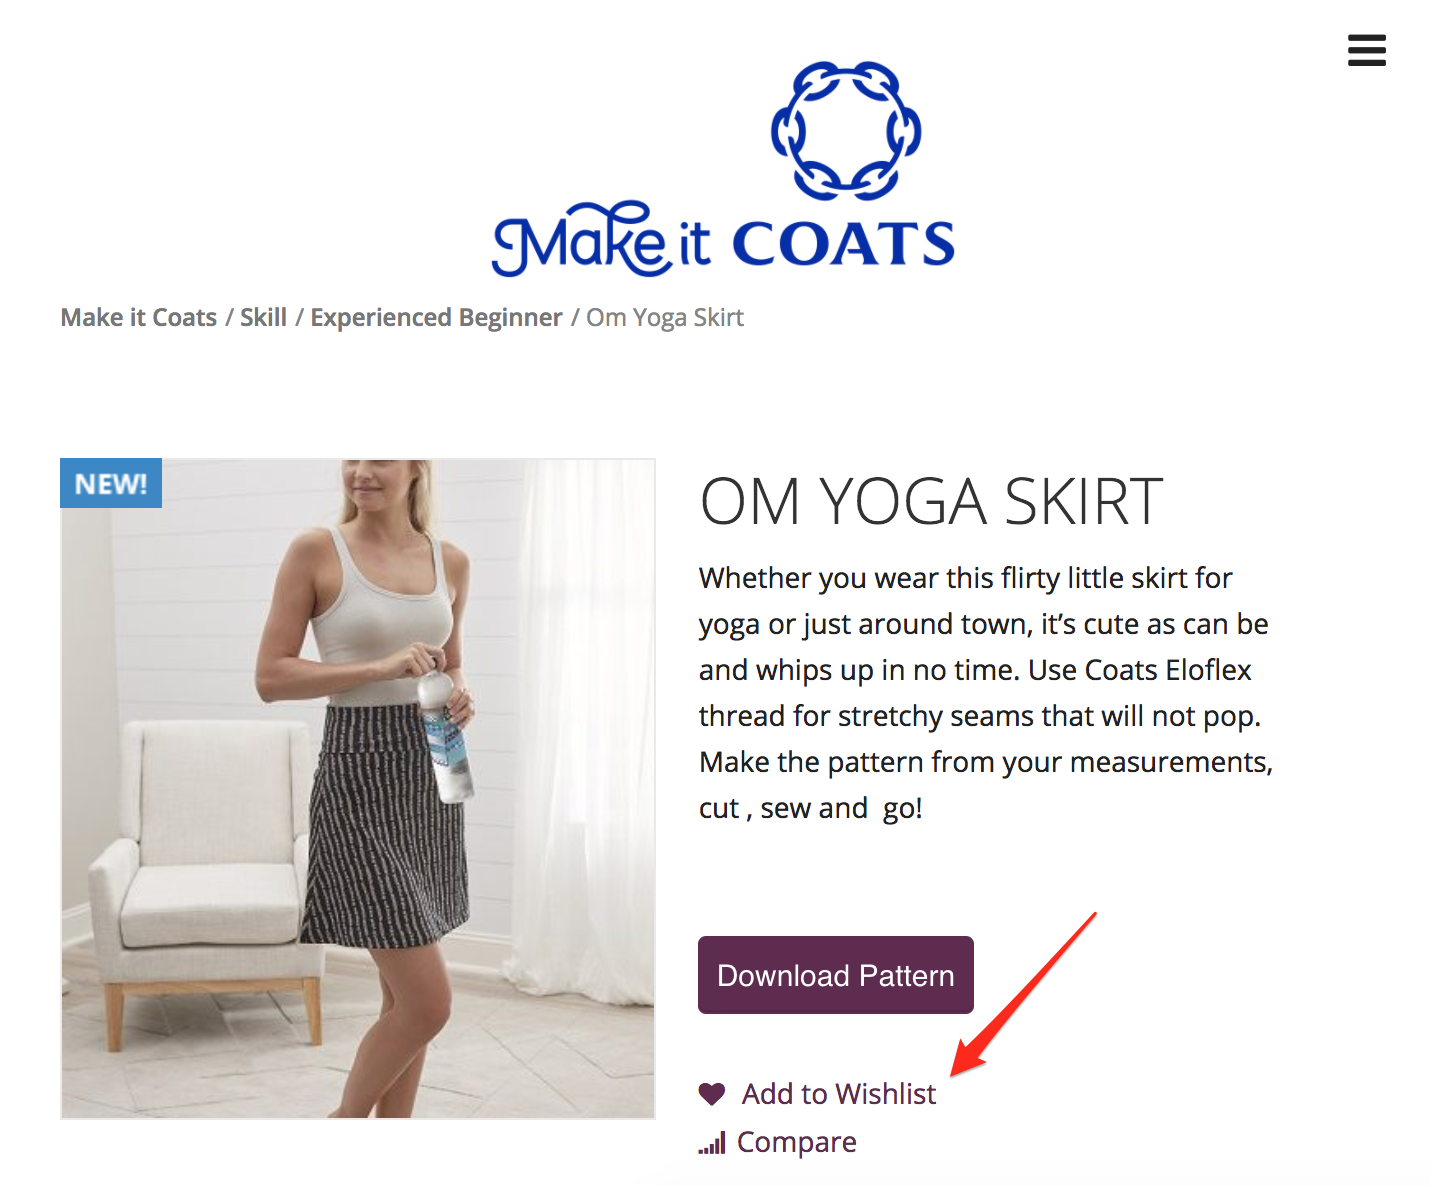 Screenshot showing a product page for a skirt